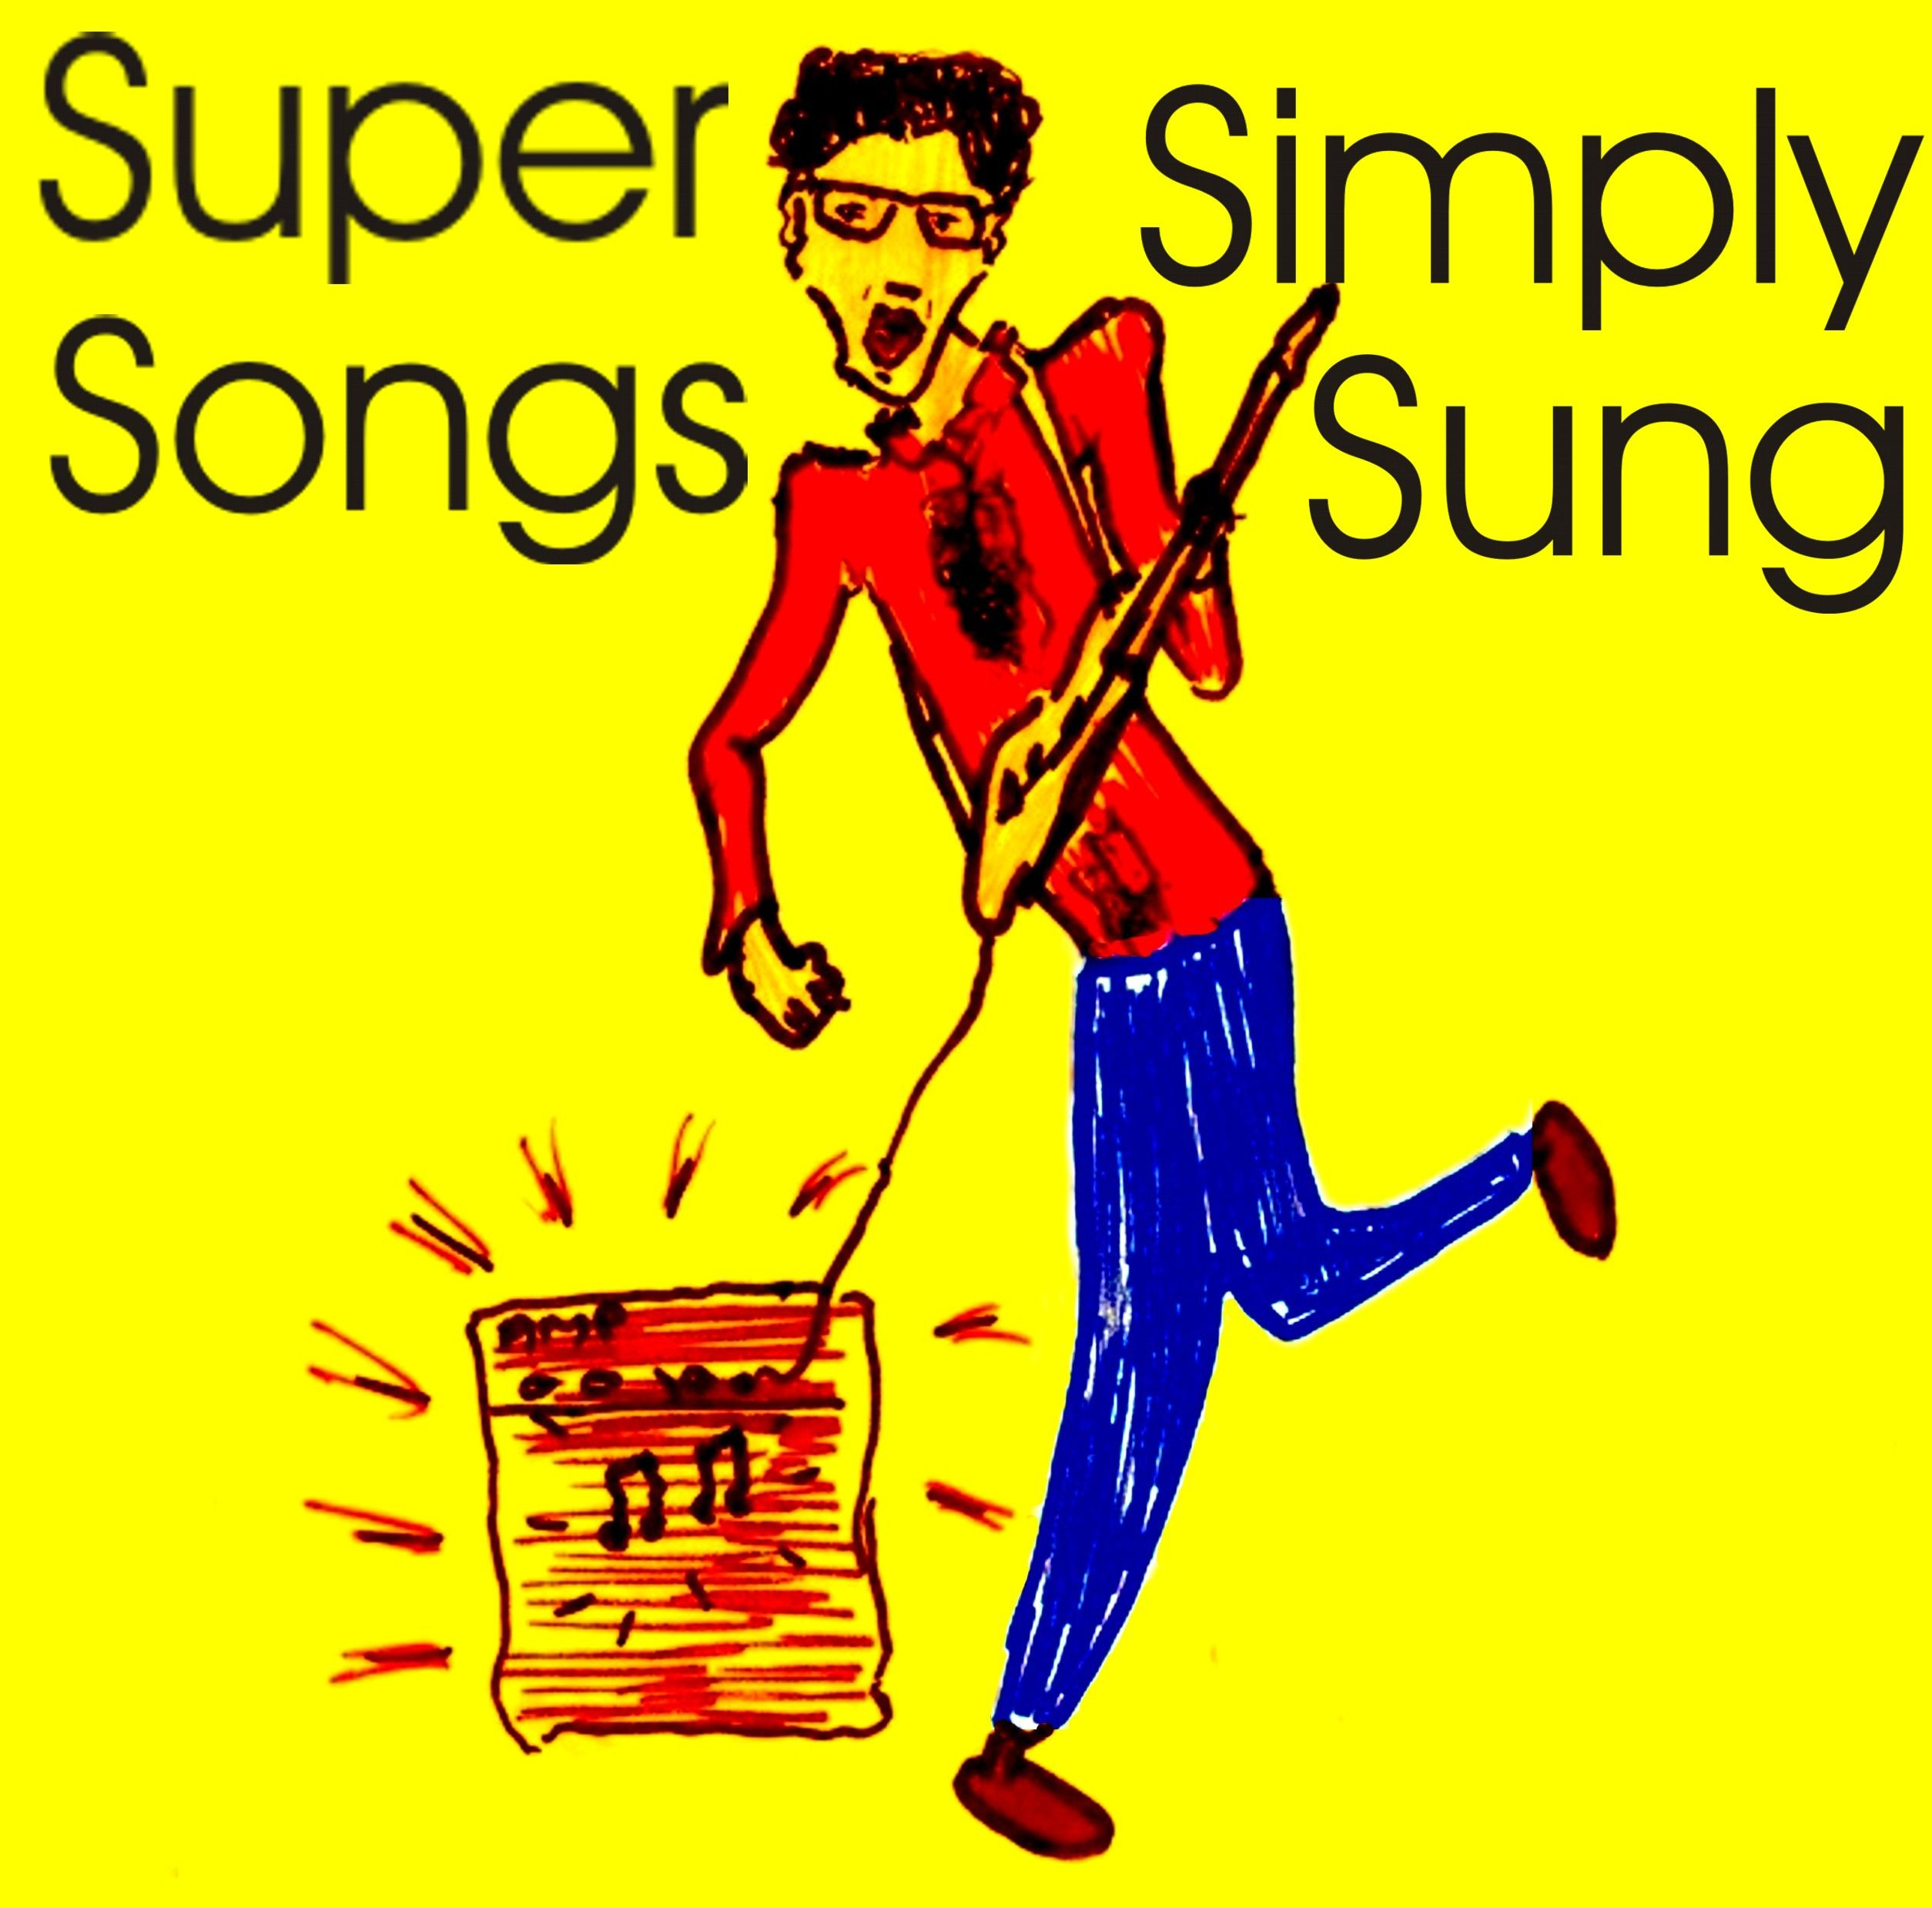 Super Songs Simply Sung